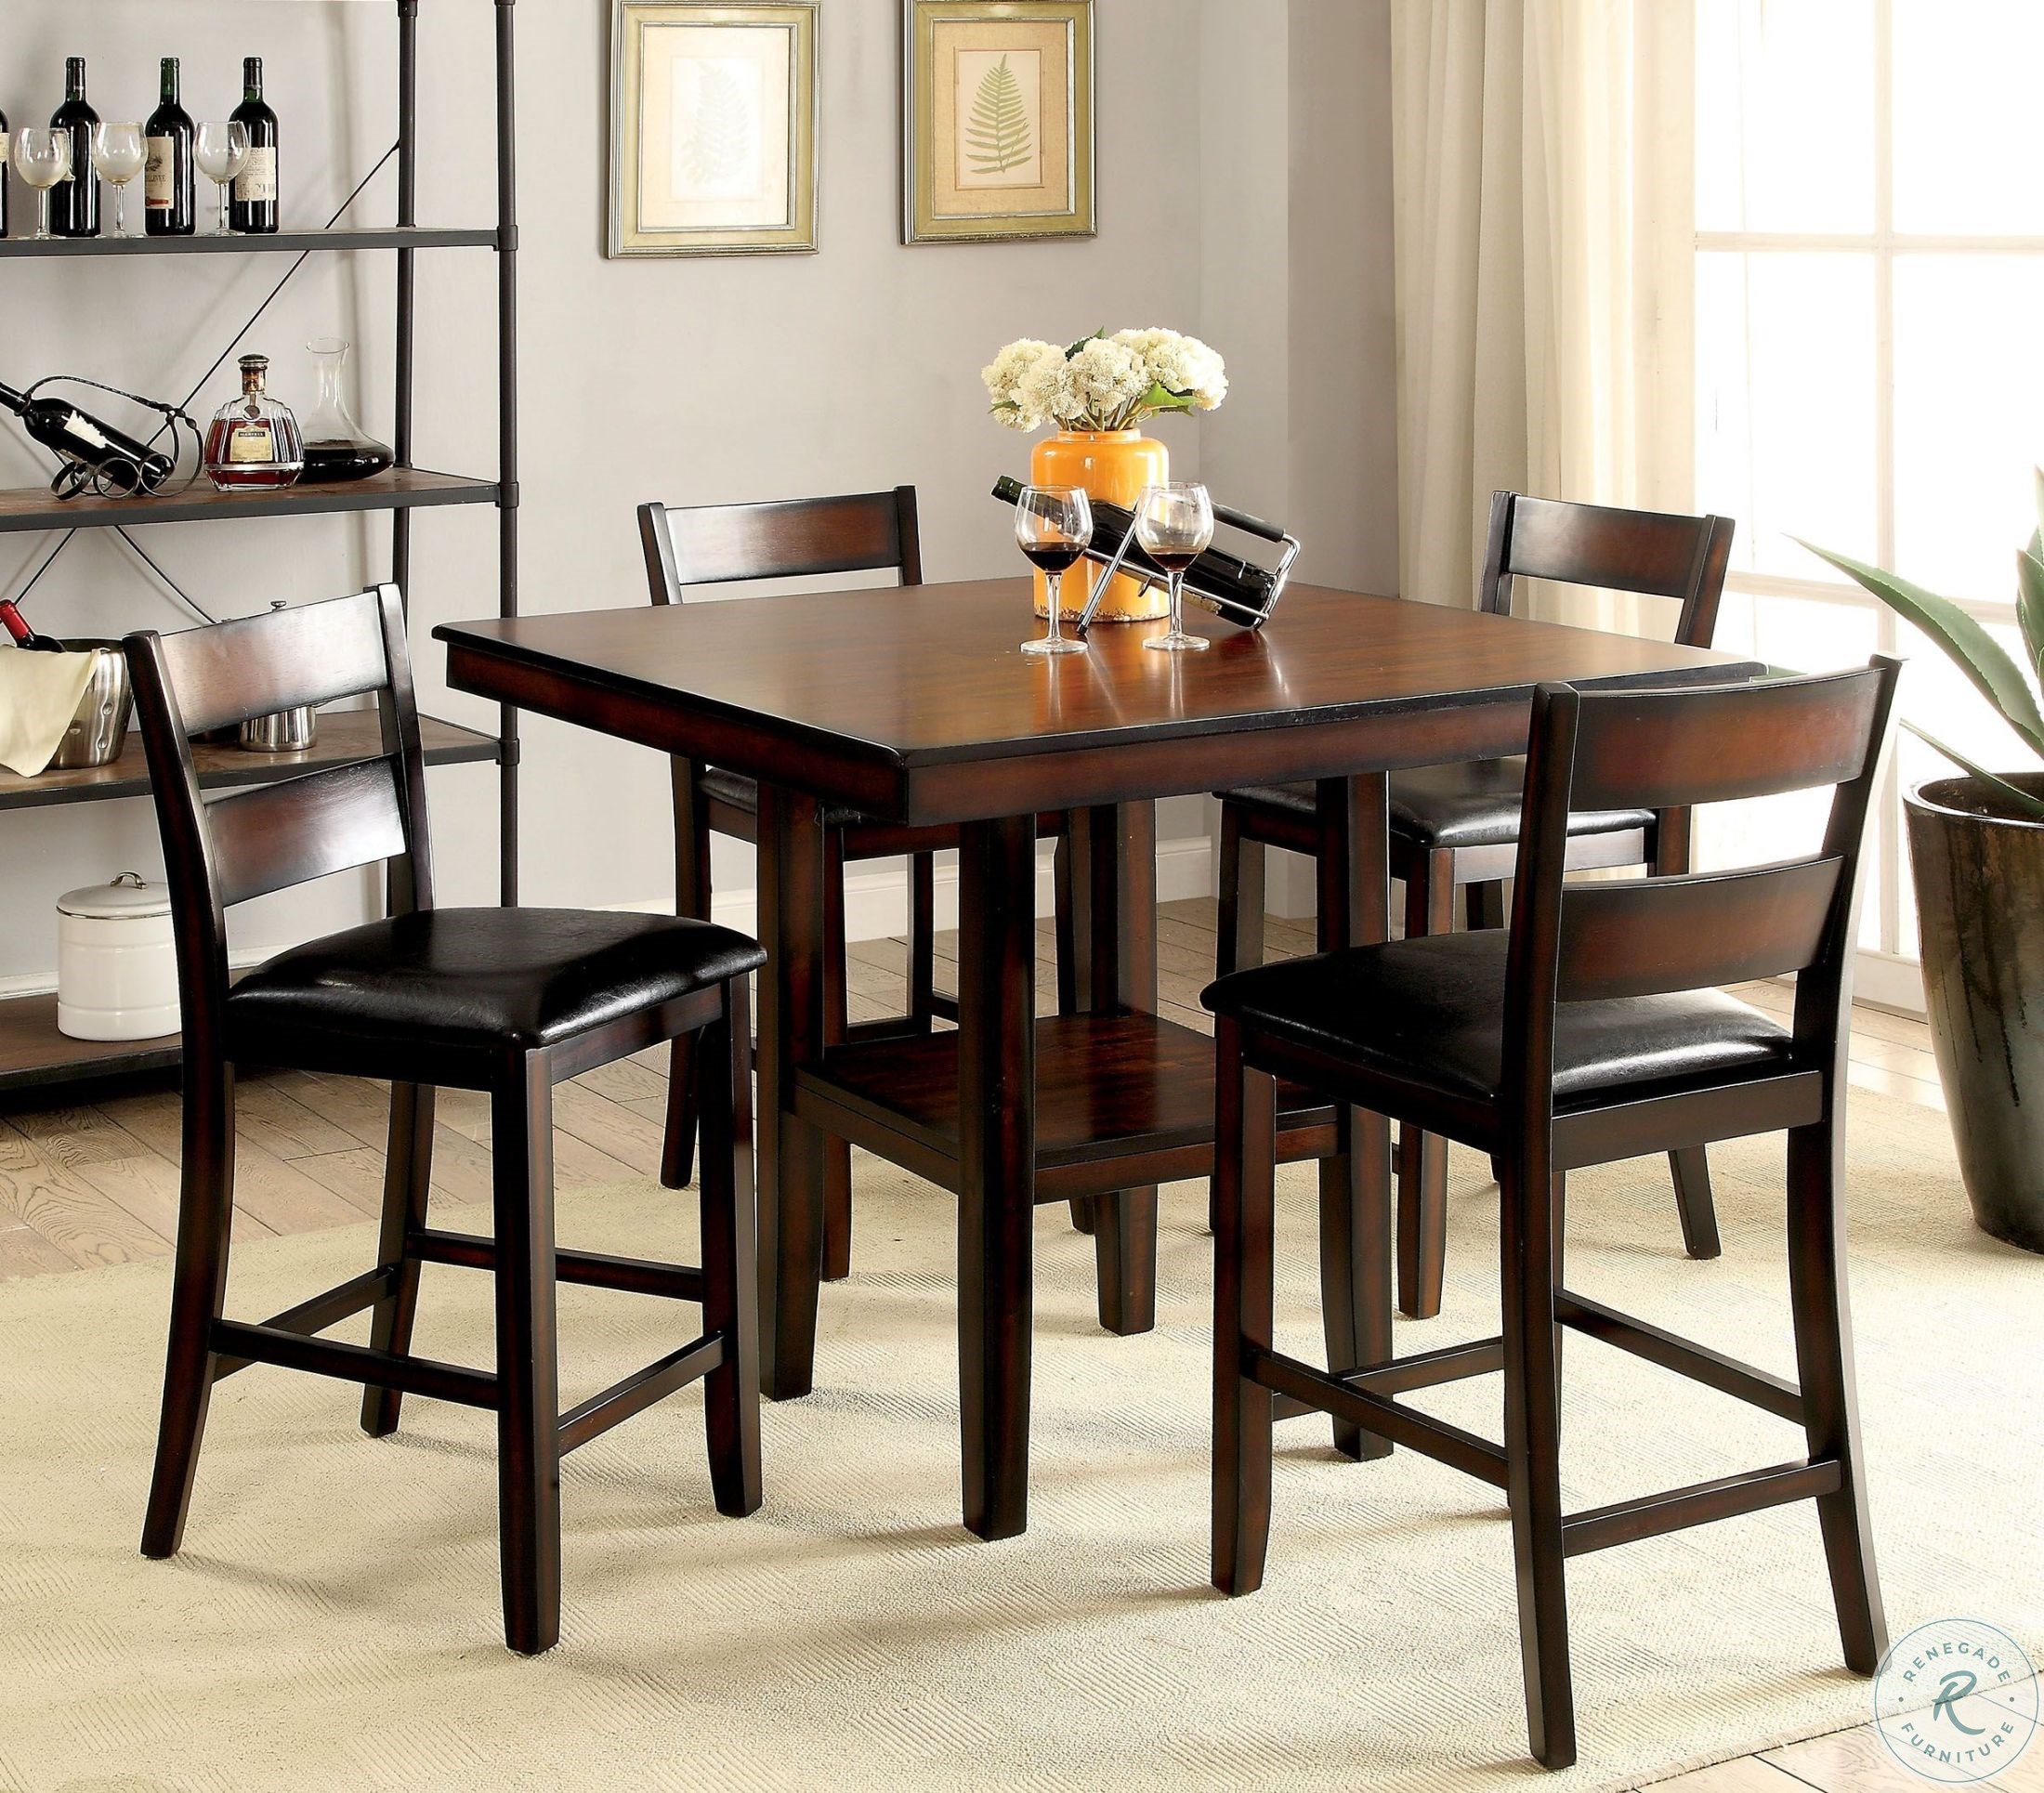 Most Recent Penelope 3 Piece Counter Height Wood Dining Sets Throughout Norah Ii Brown Cherry 5 Piece Counter Height Dining Set From (#9 of 20)